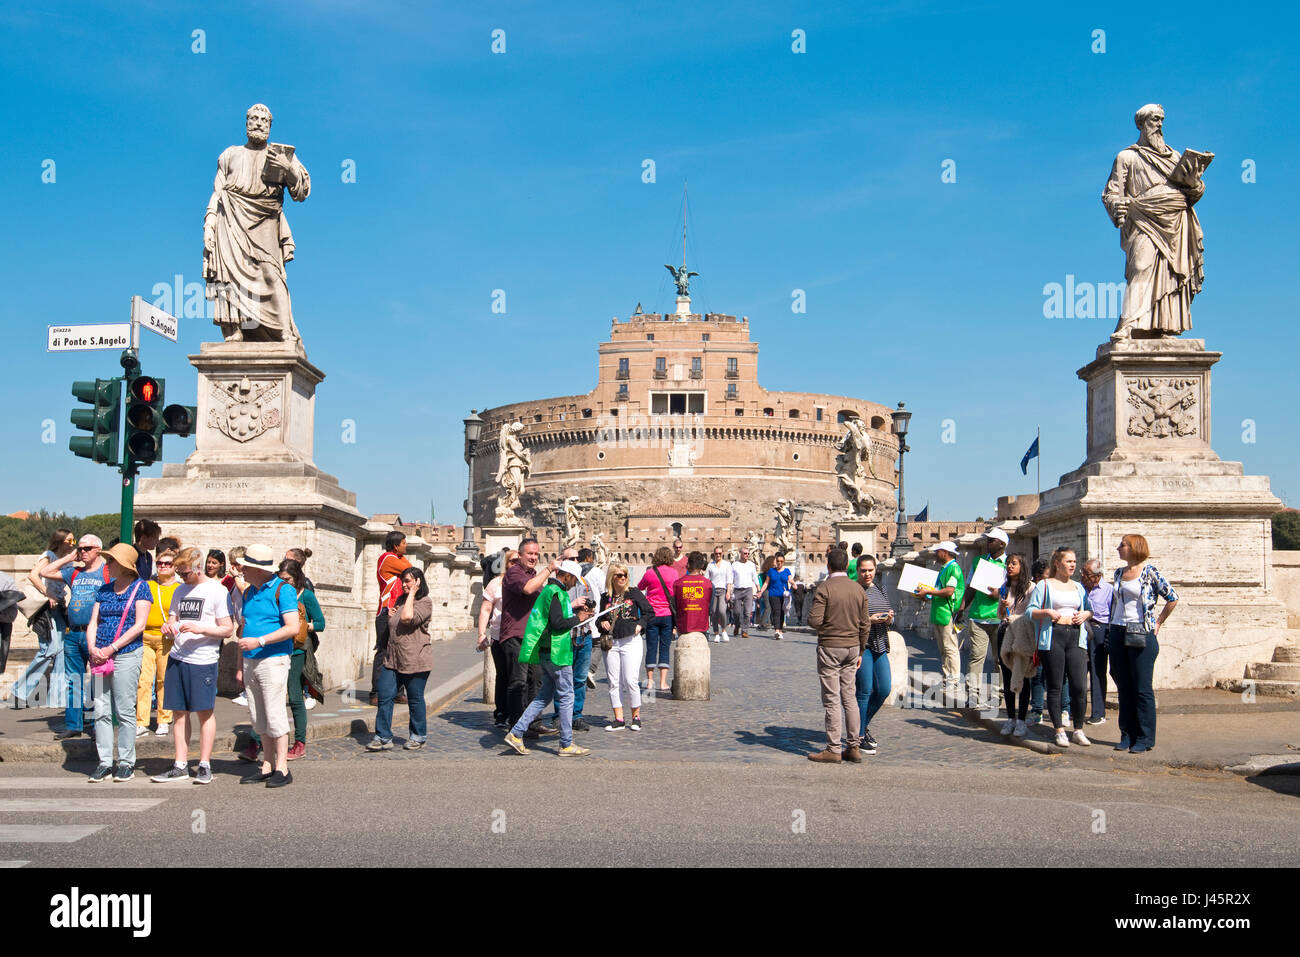 The Castel Sant'Angelo with the tourists walking across the pedestrian St. Angelo Bridge or Ponte Sant'Angelo - Stock Image